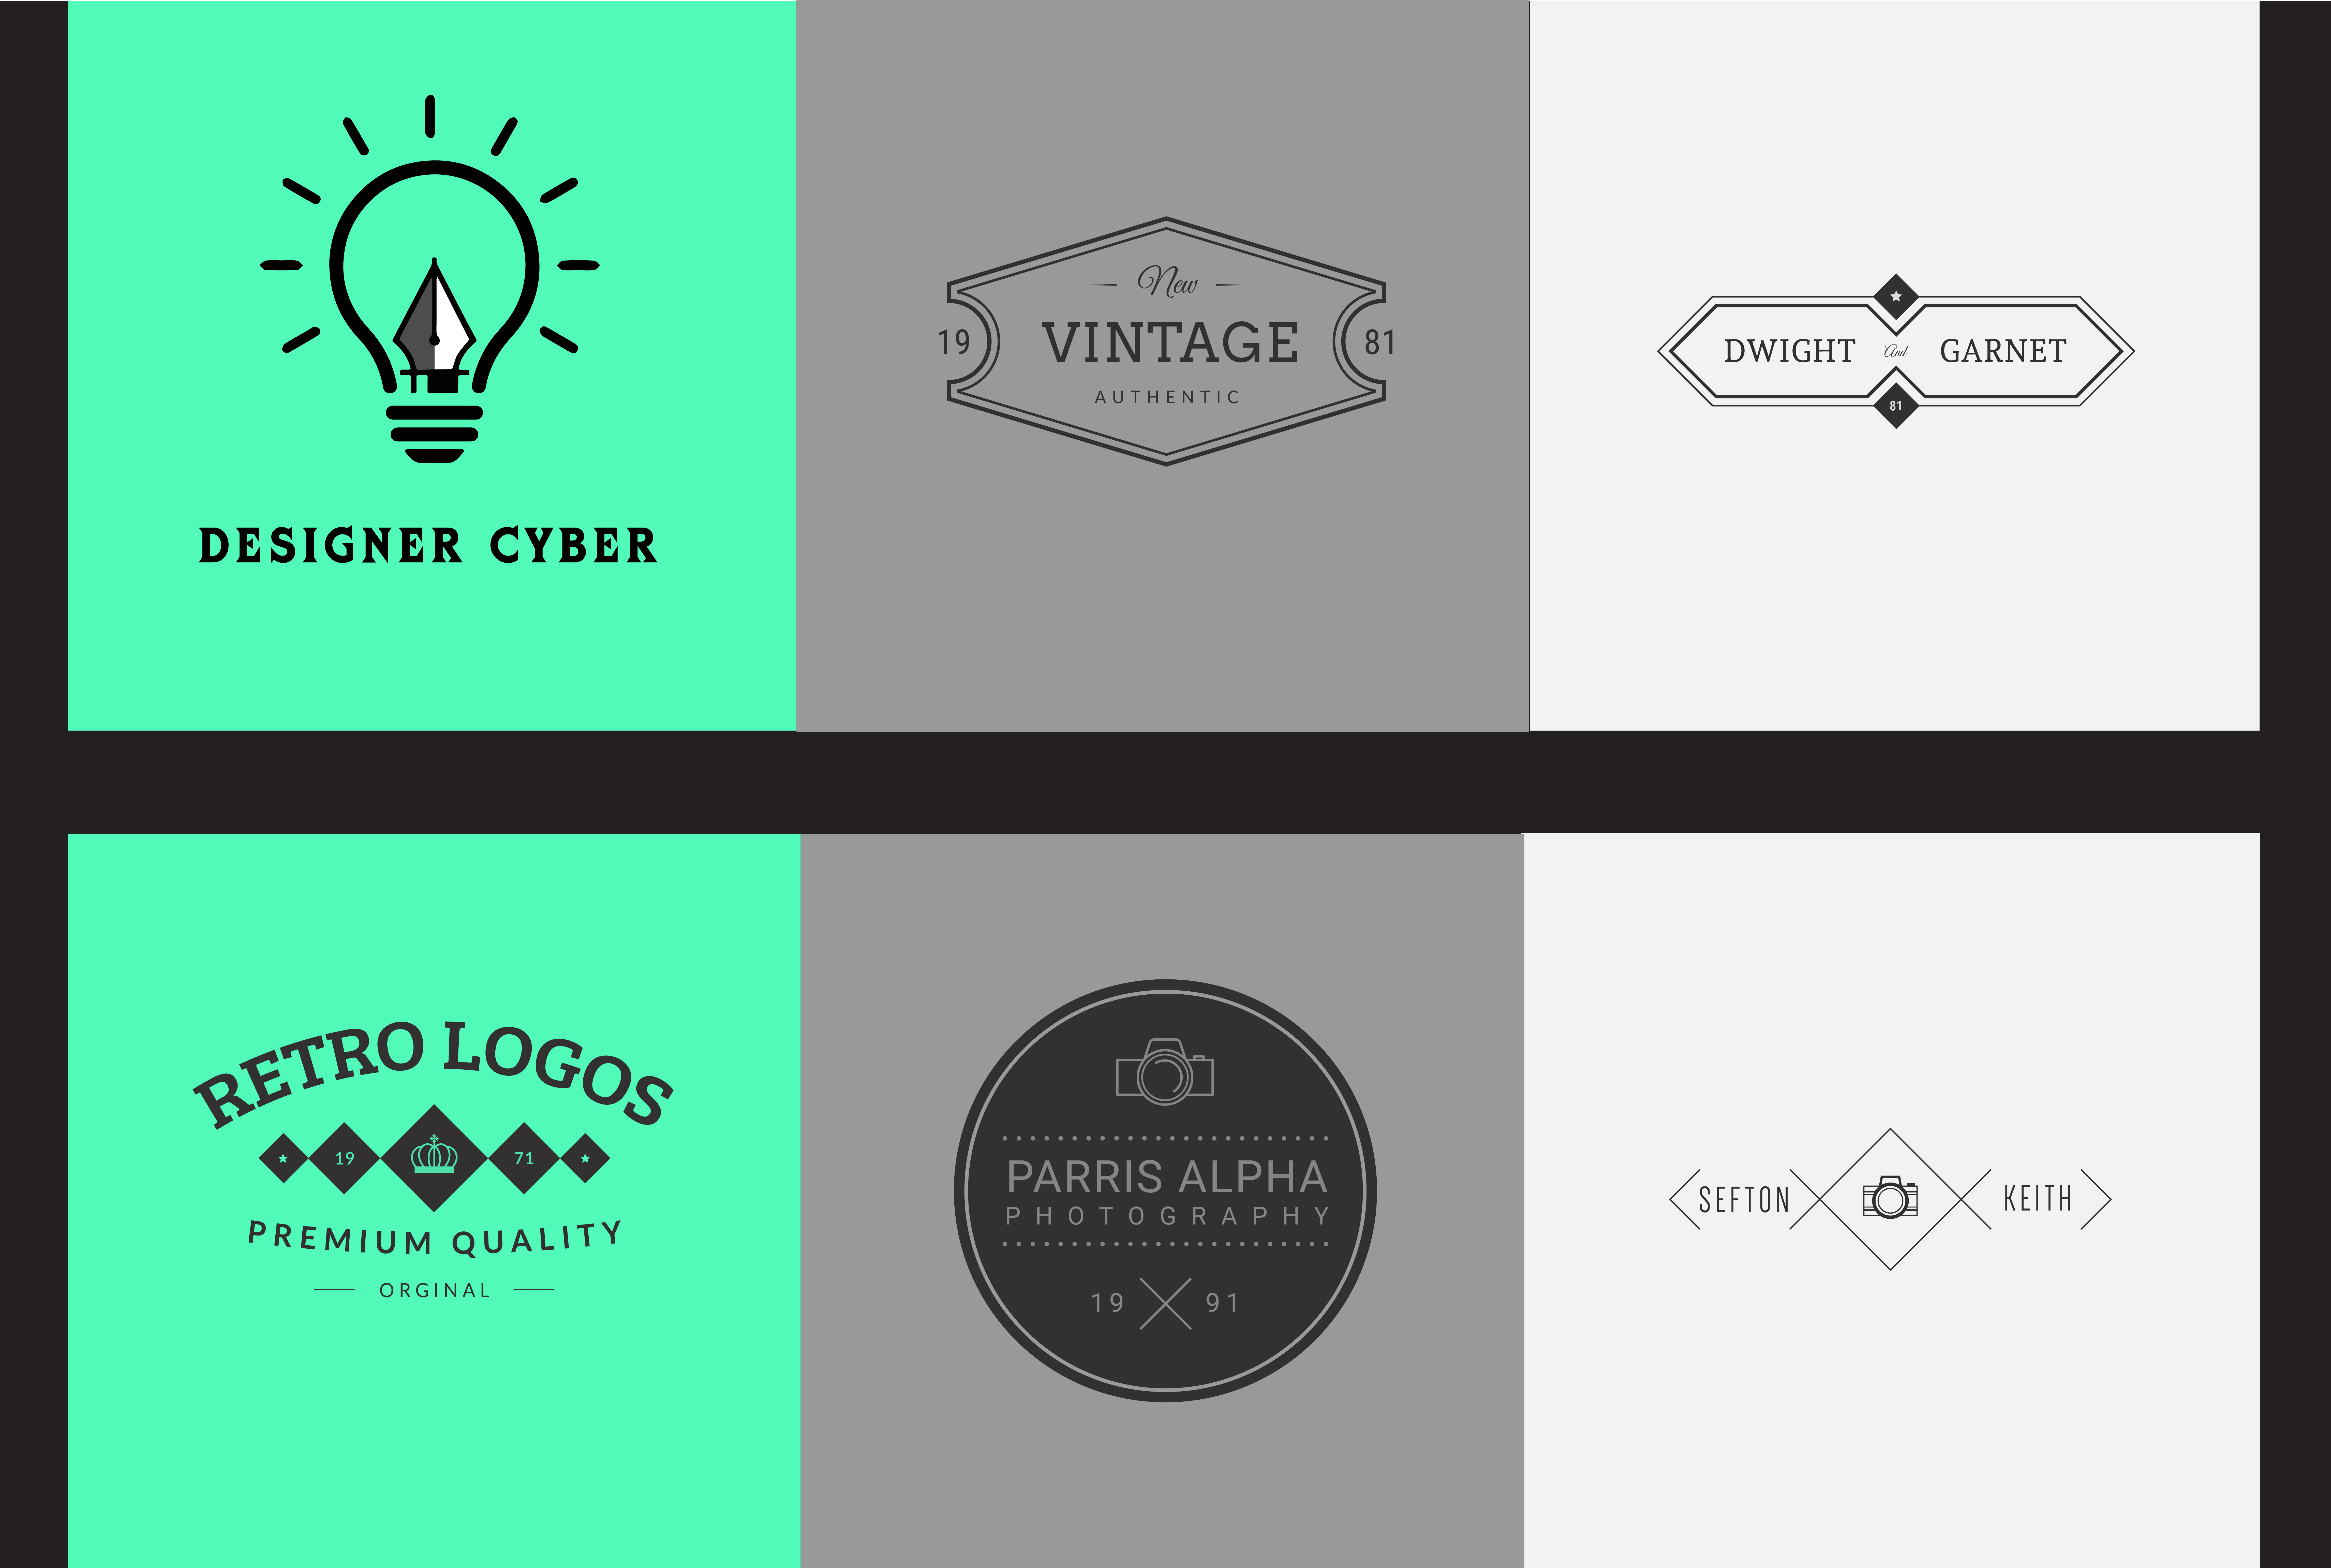 I will update or create professional logo in 24 hours